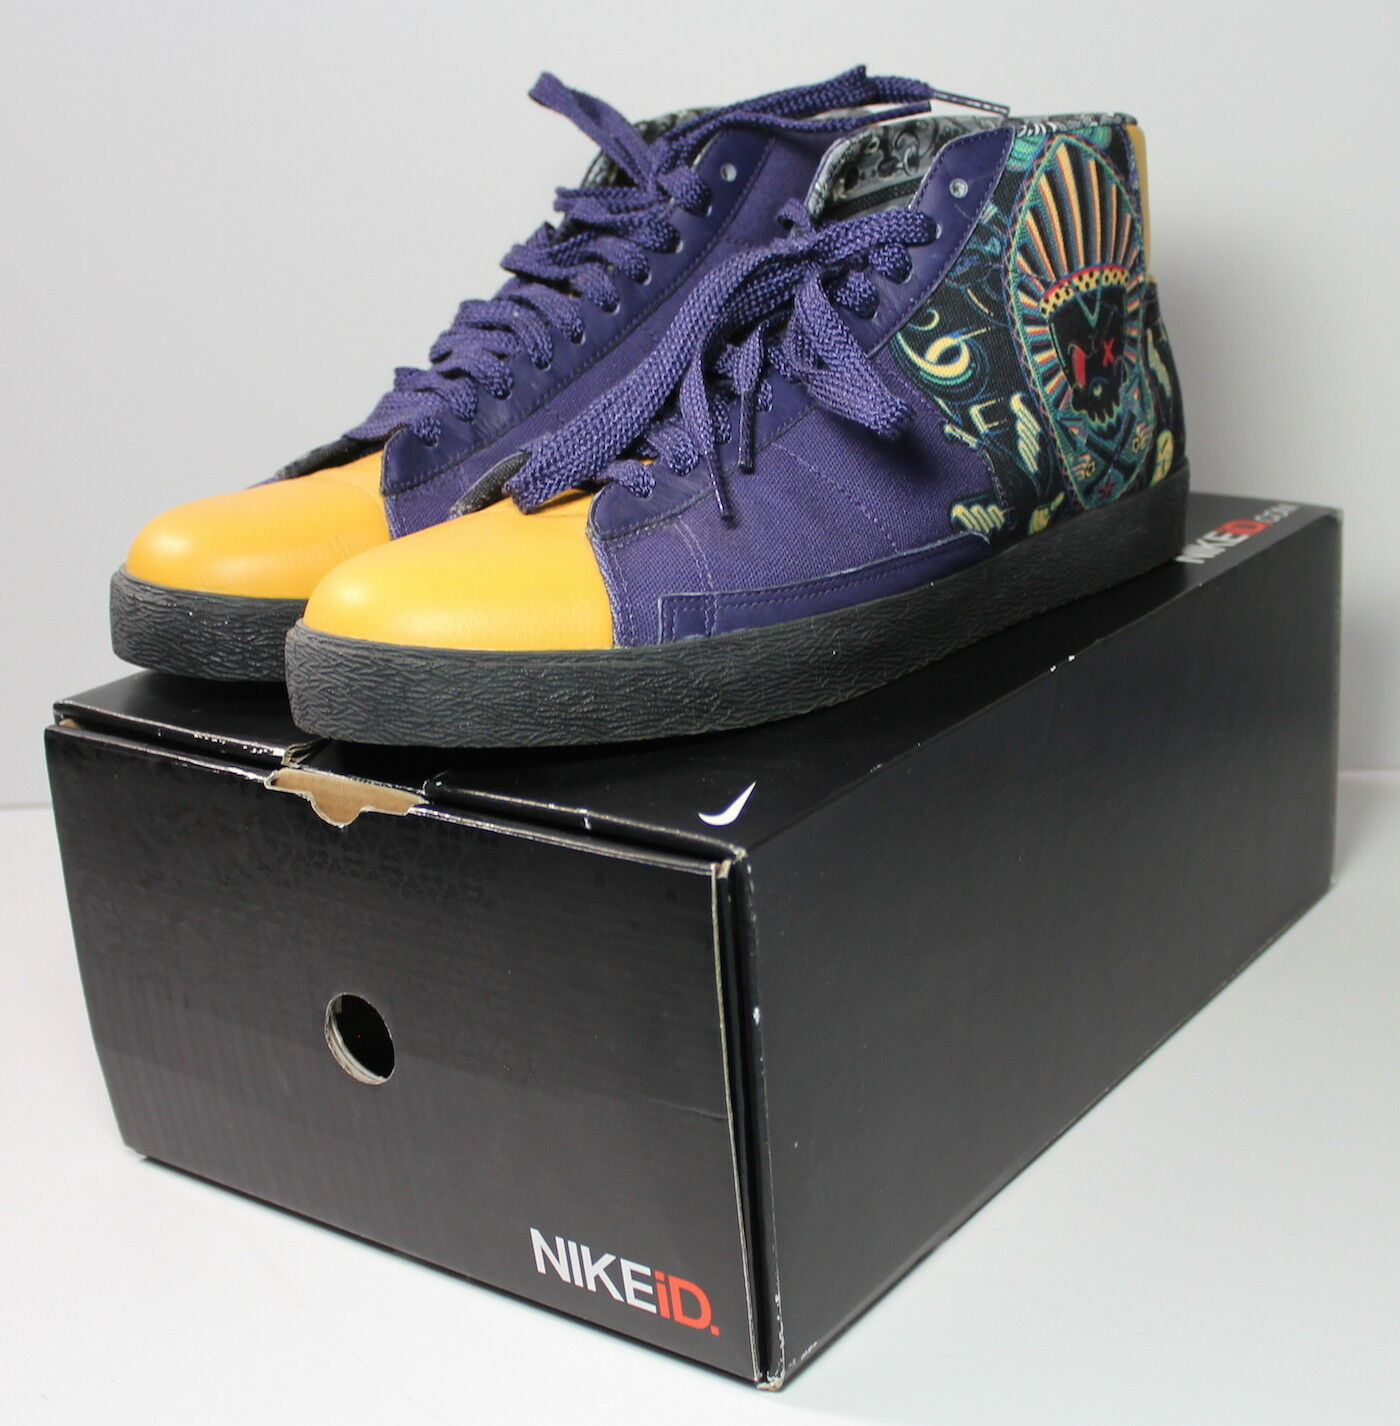 Nike ID South African Men's 13 Artist Kronk Limited Edition RARE Shoes EUC w BOX